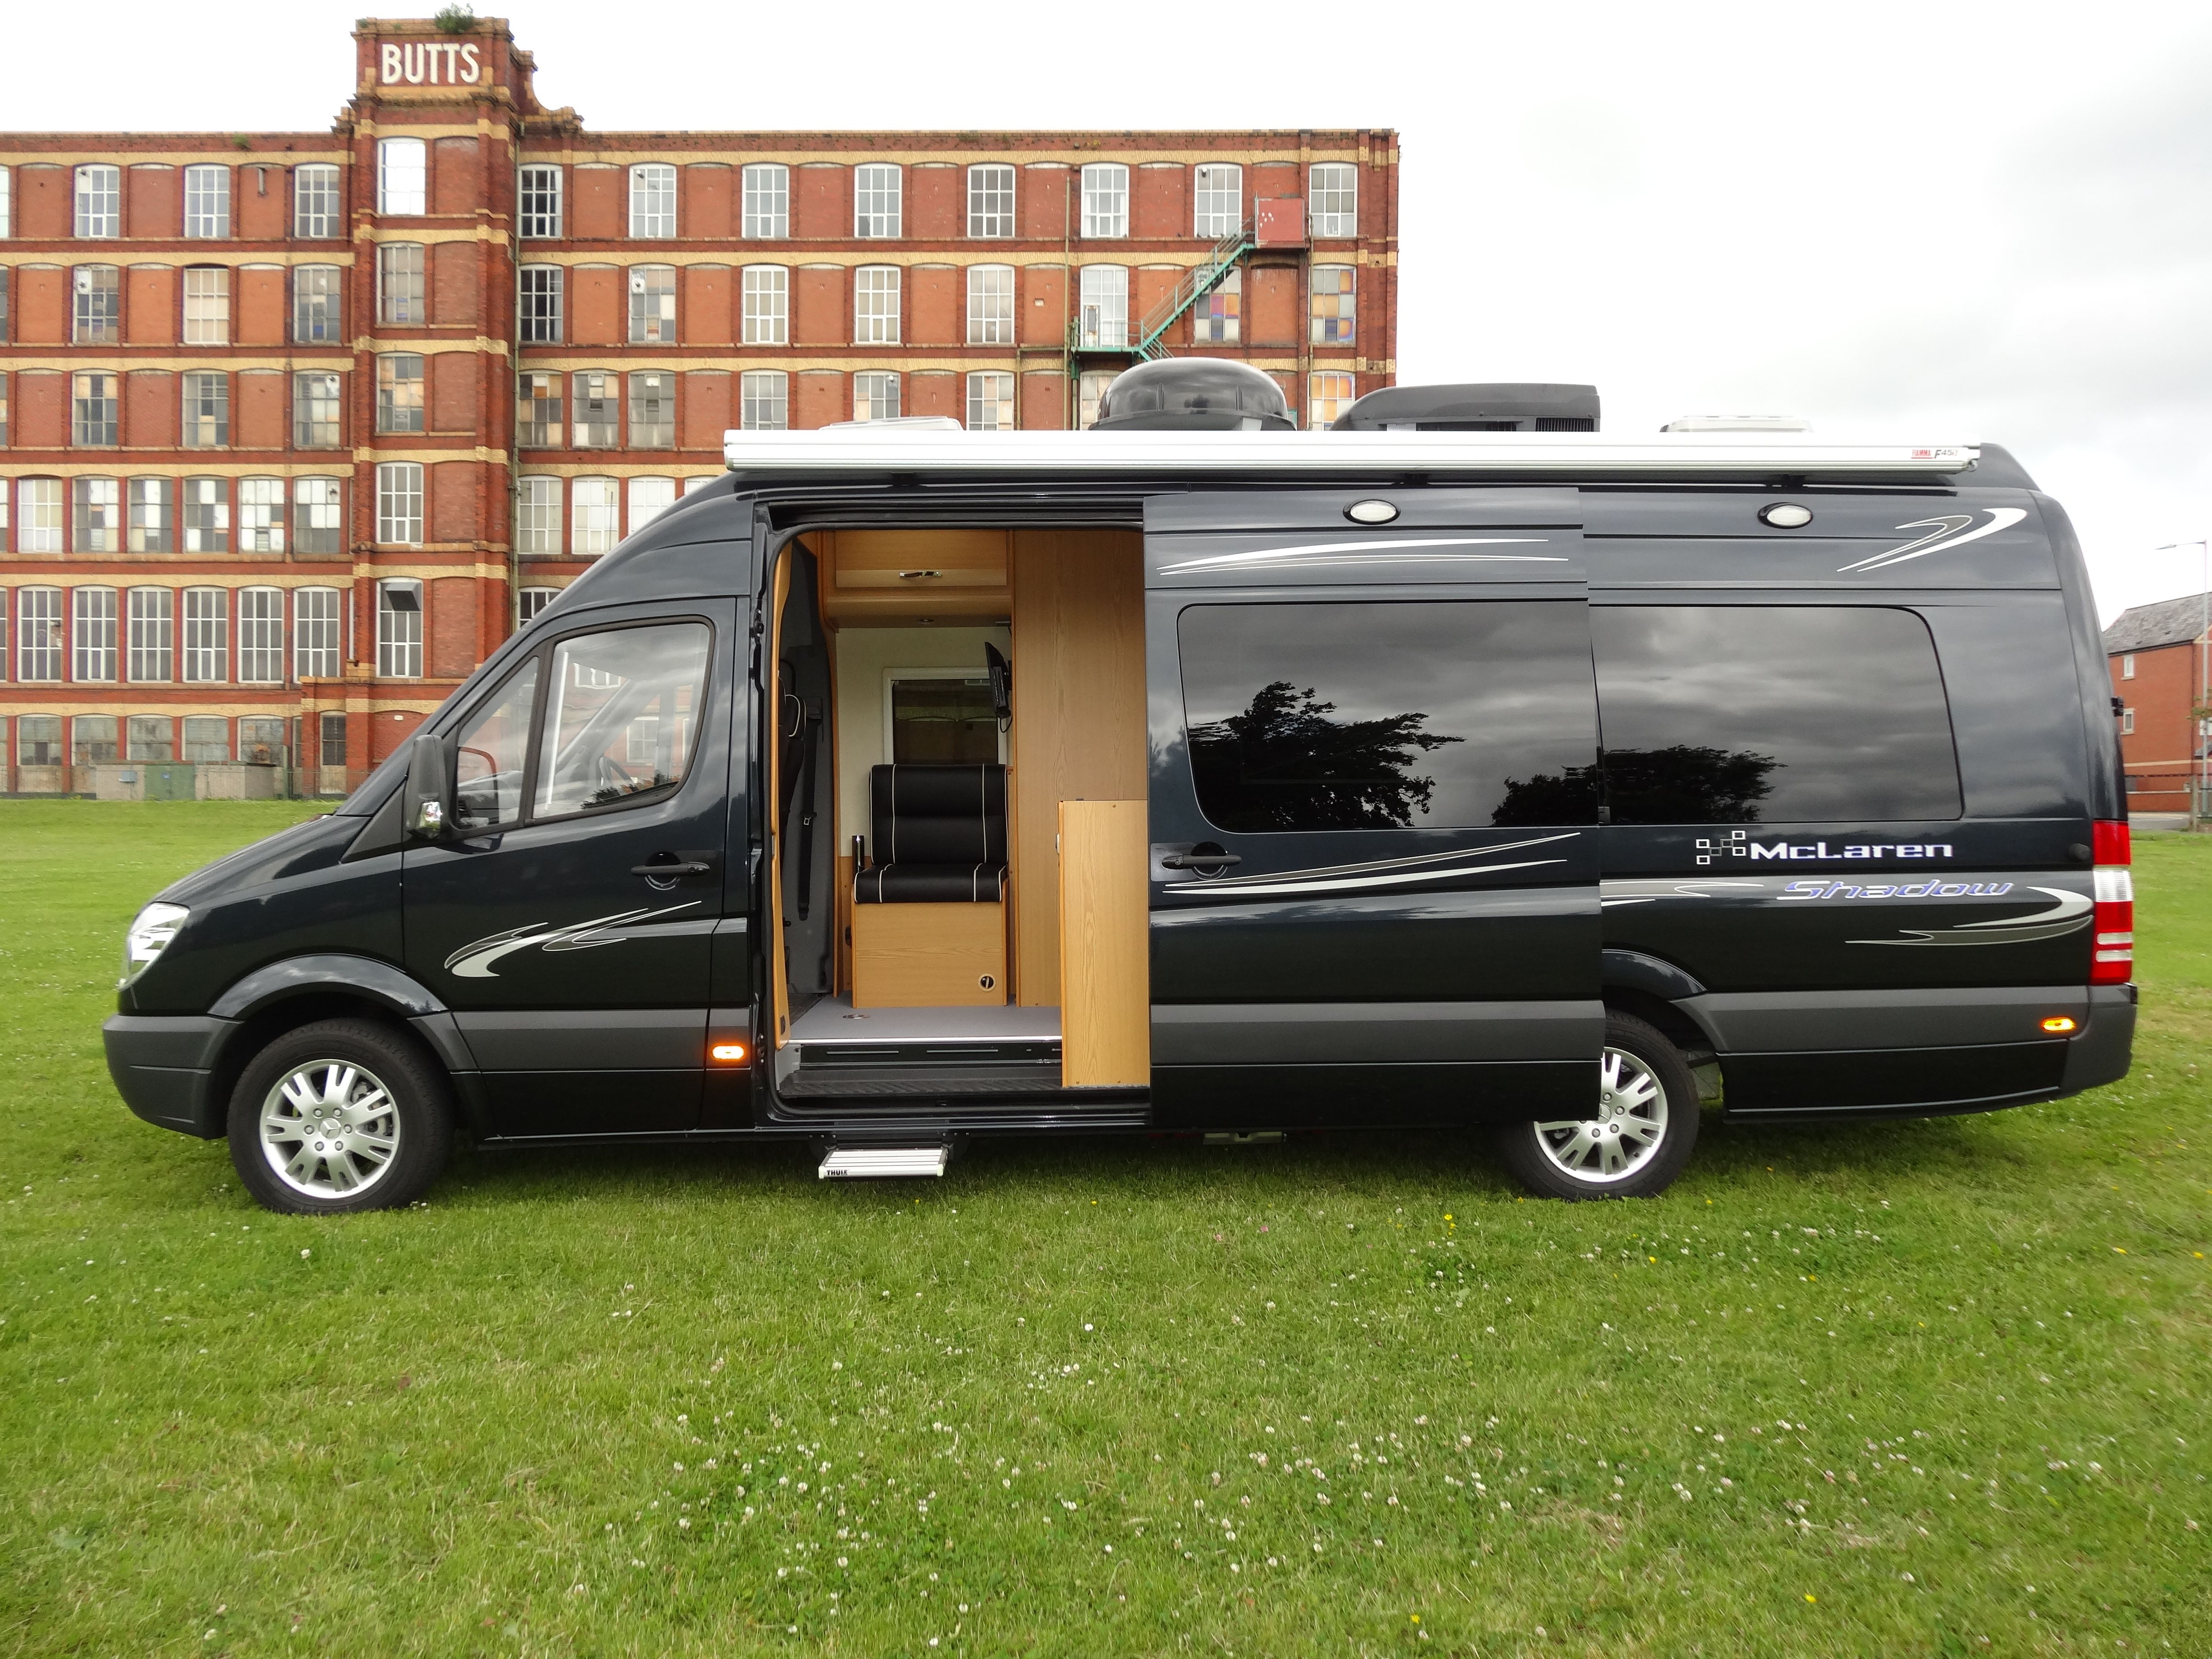 pin by keith desonier on sprinter wohnmobil. Black Bedroom Furniture Sets. Home Design Ideas